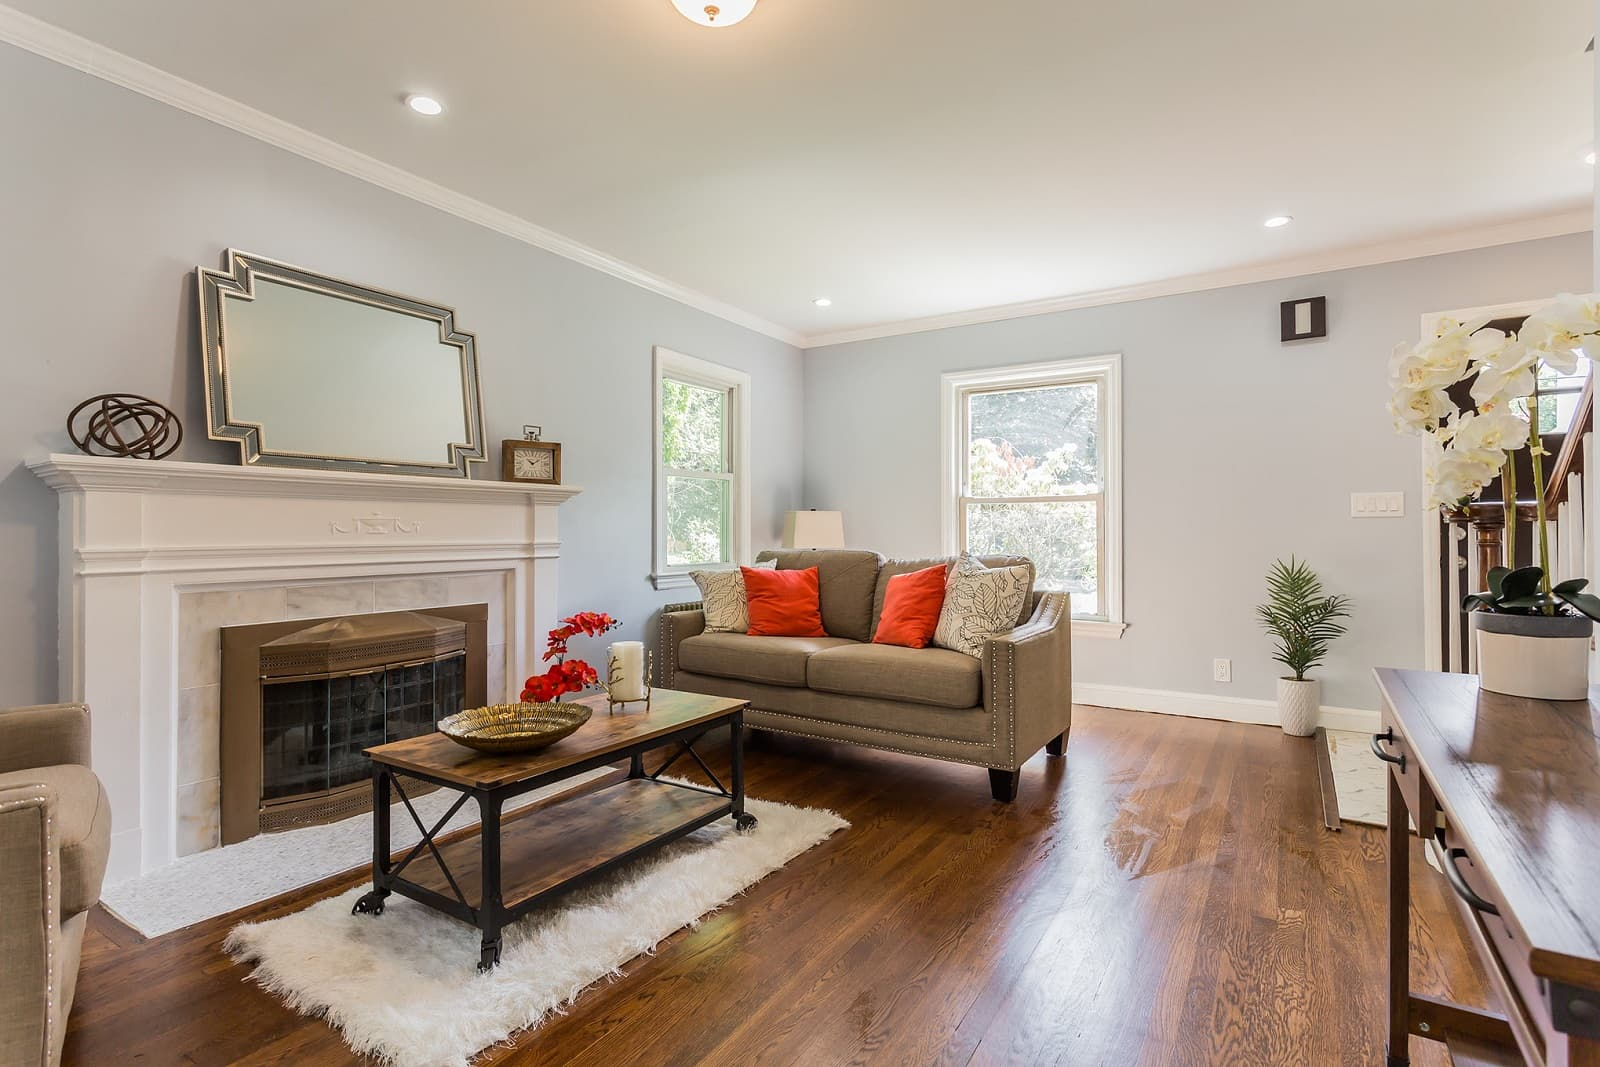 Real Estate Photography in Hempstead - NY - USA - Living Area View